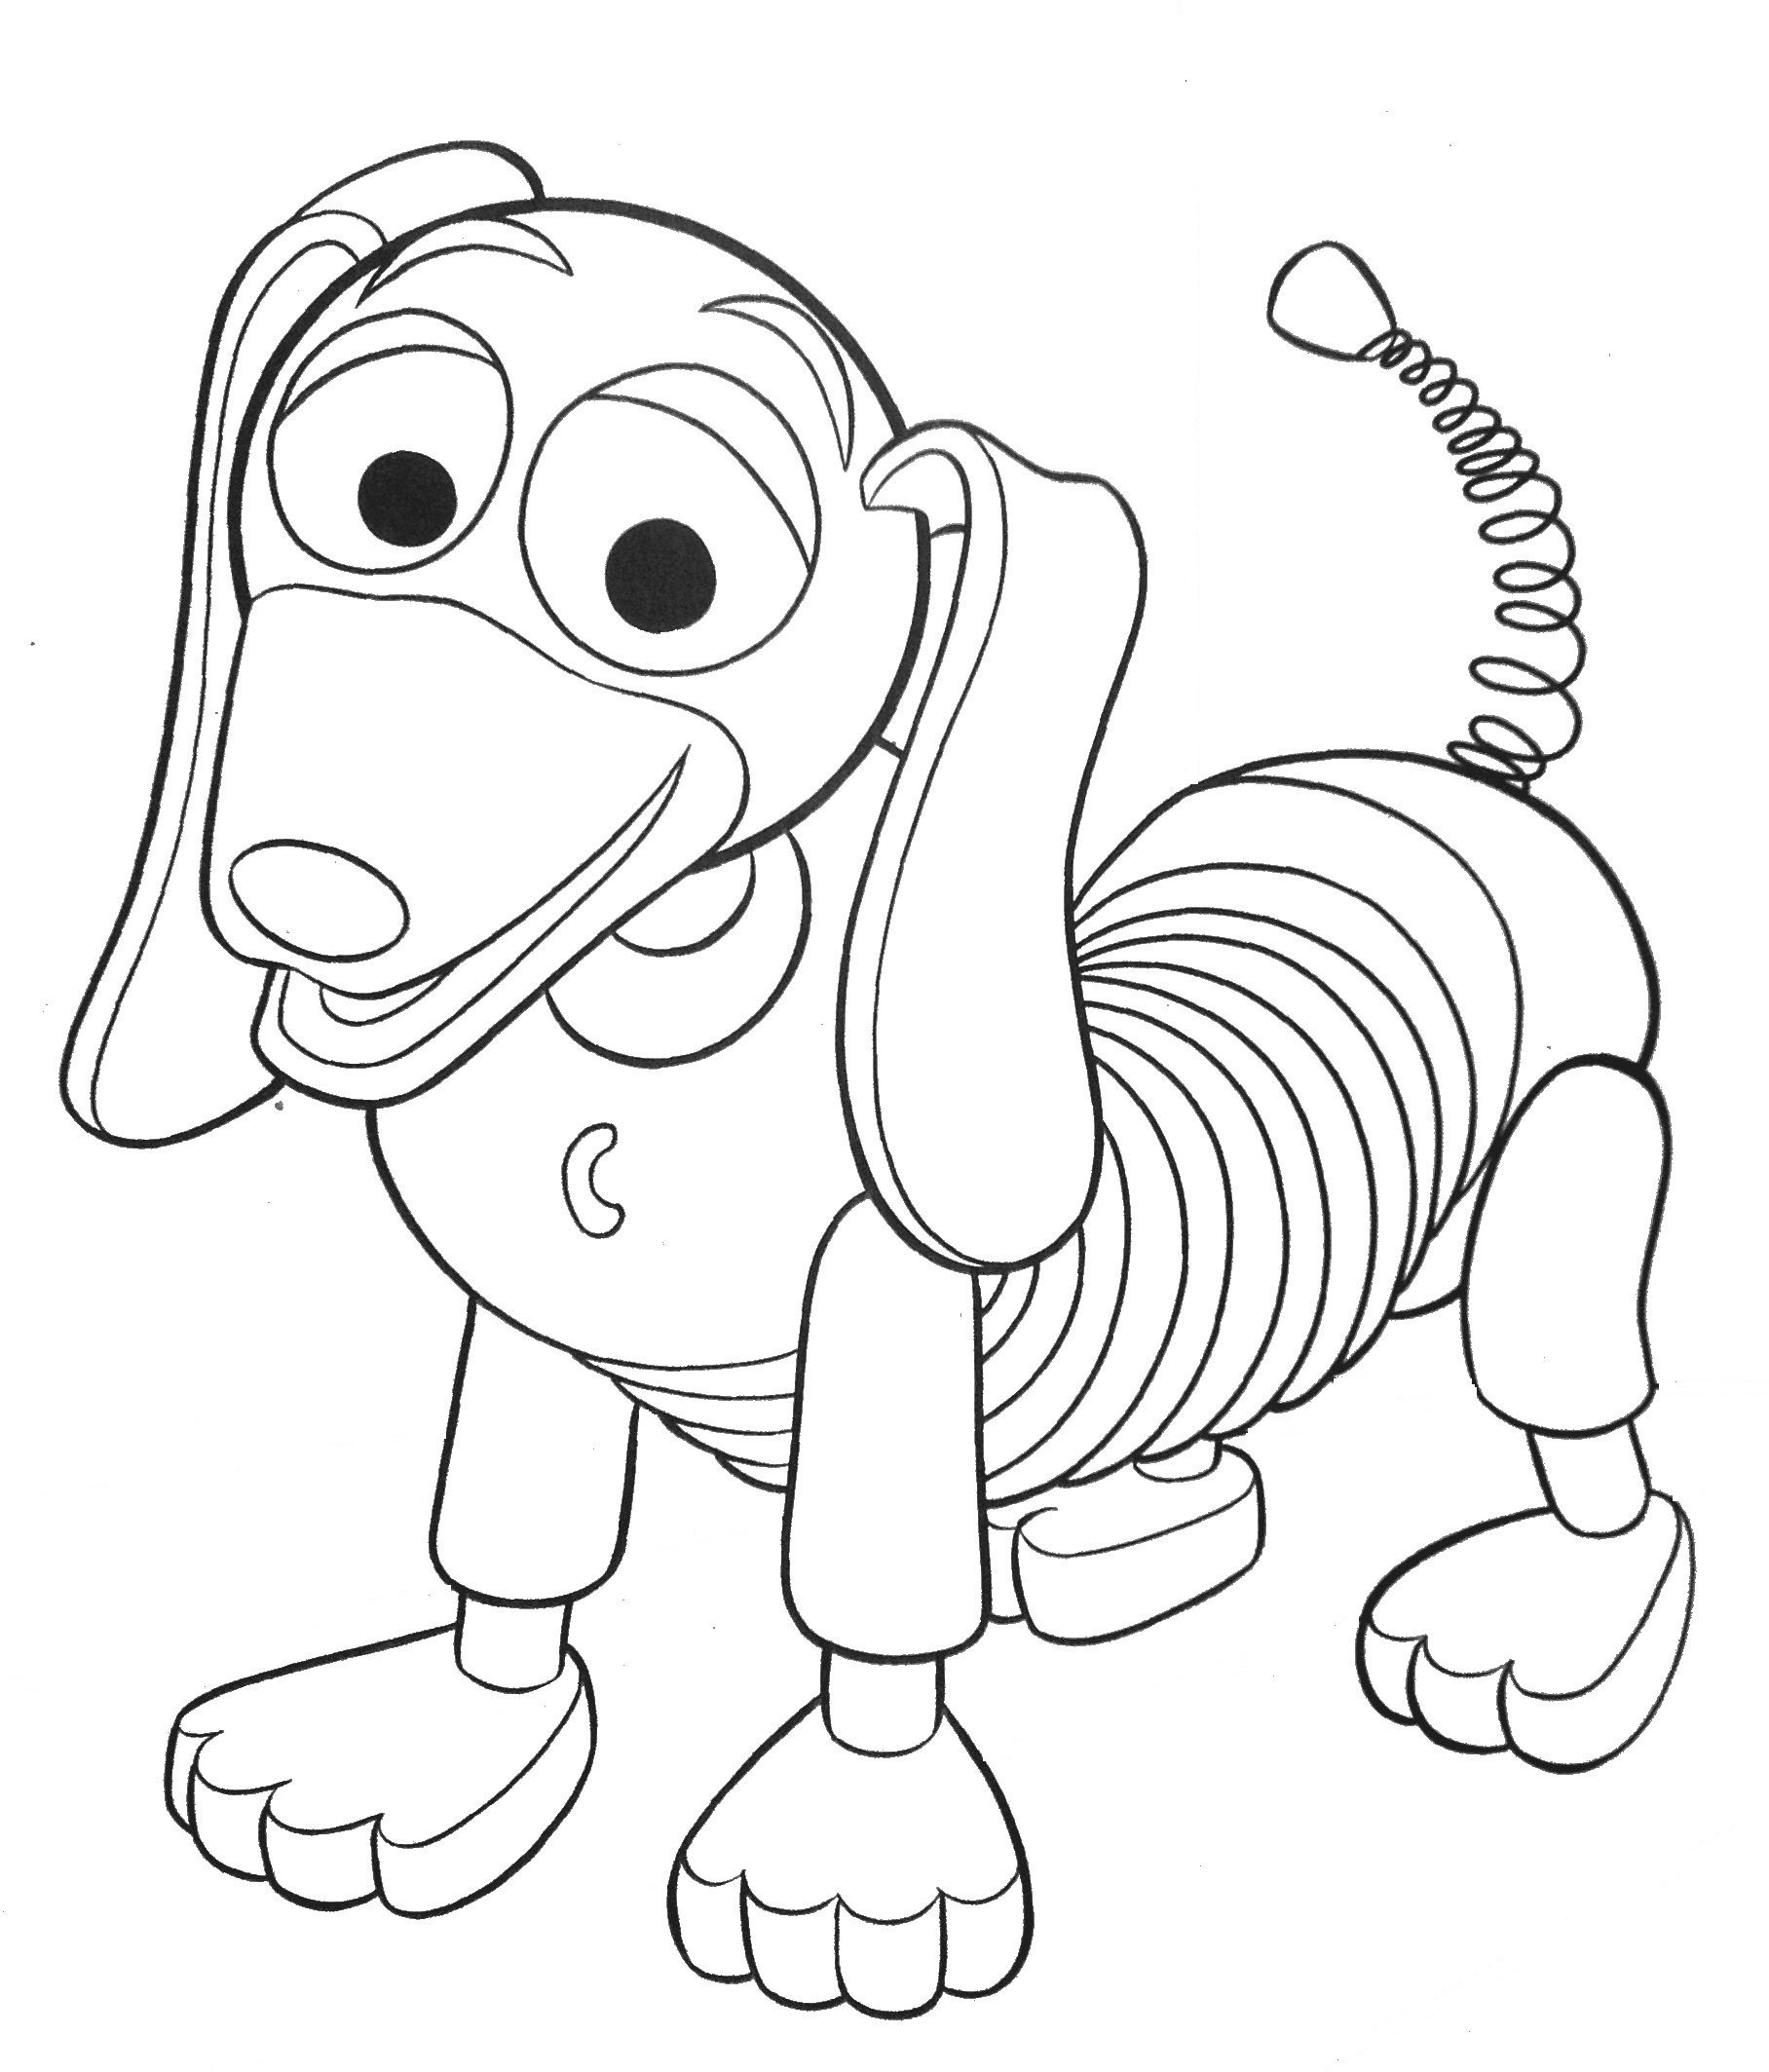 toy story woody coloring pages - dibujos de toy story para colorear e imprimir